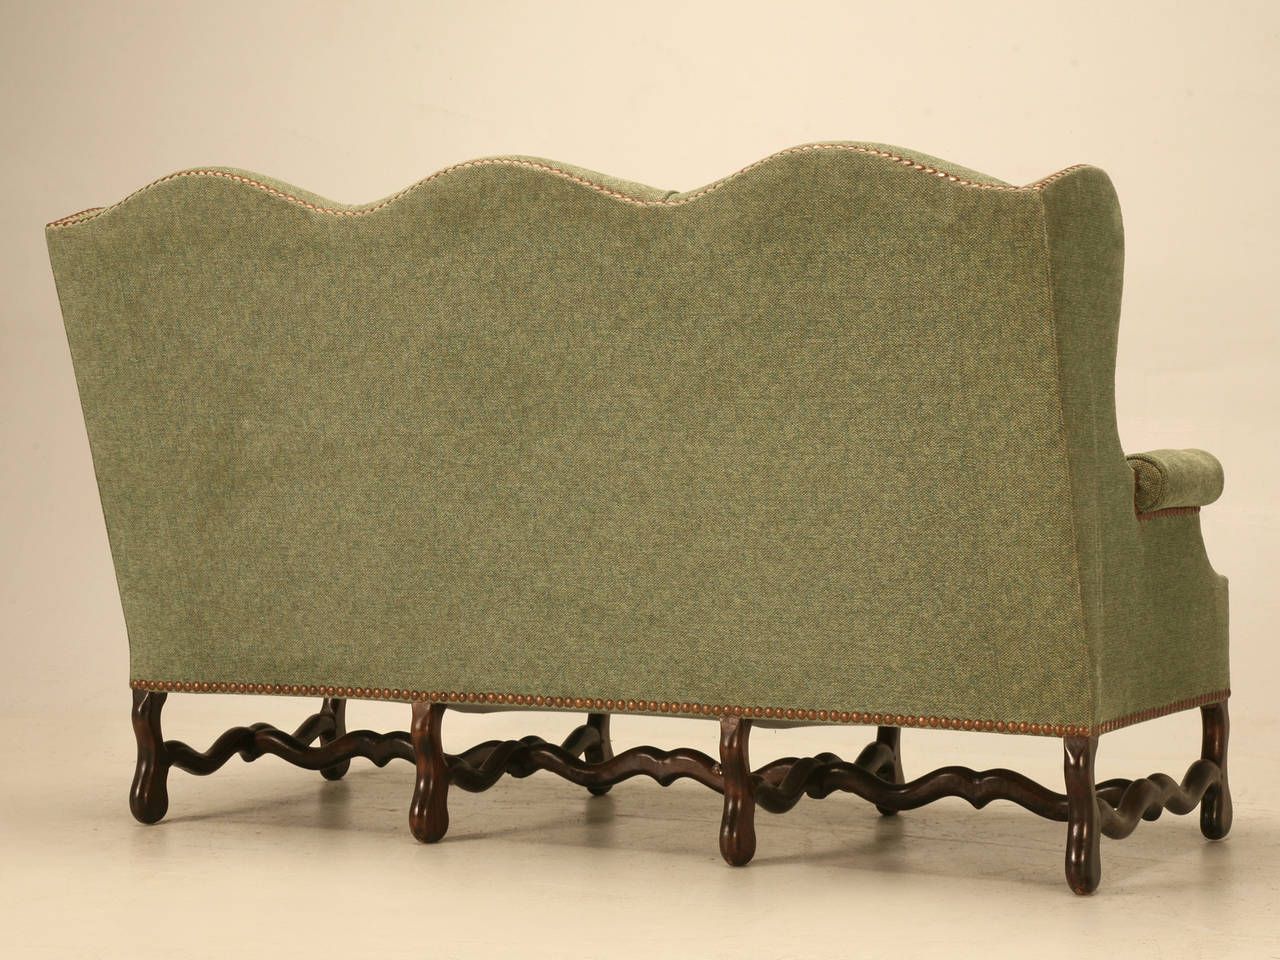 Vintage French Os De Mouton Style Small Sofa or Settee 10